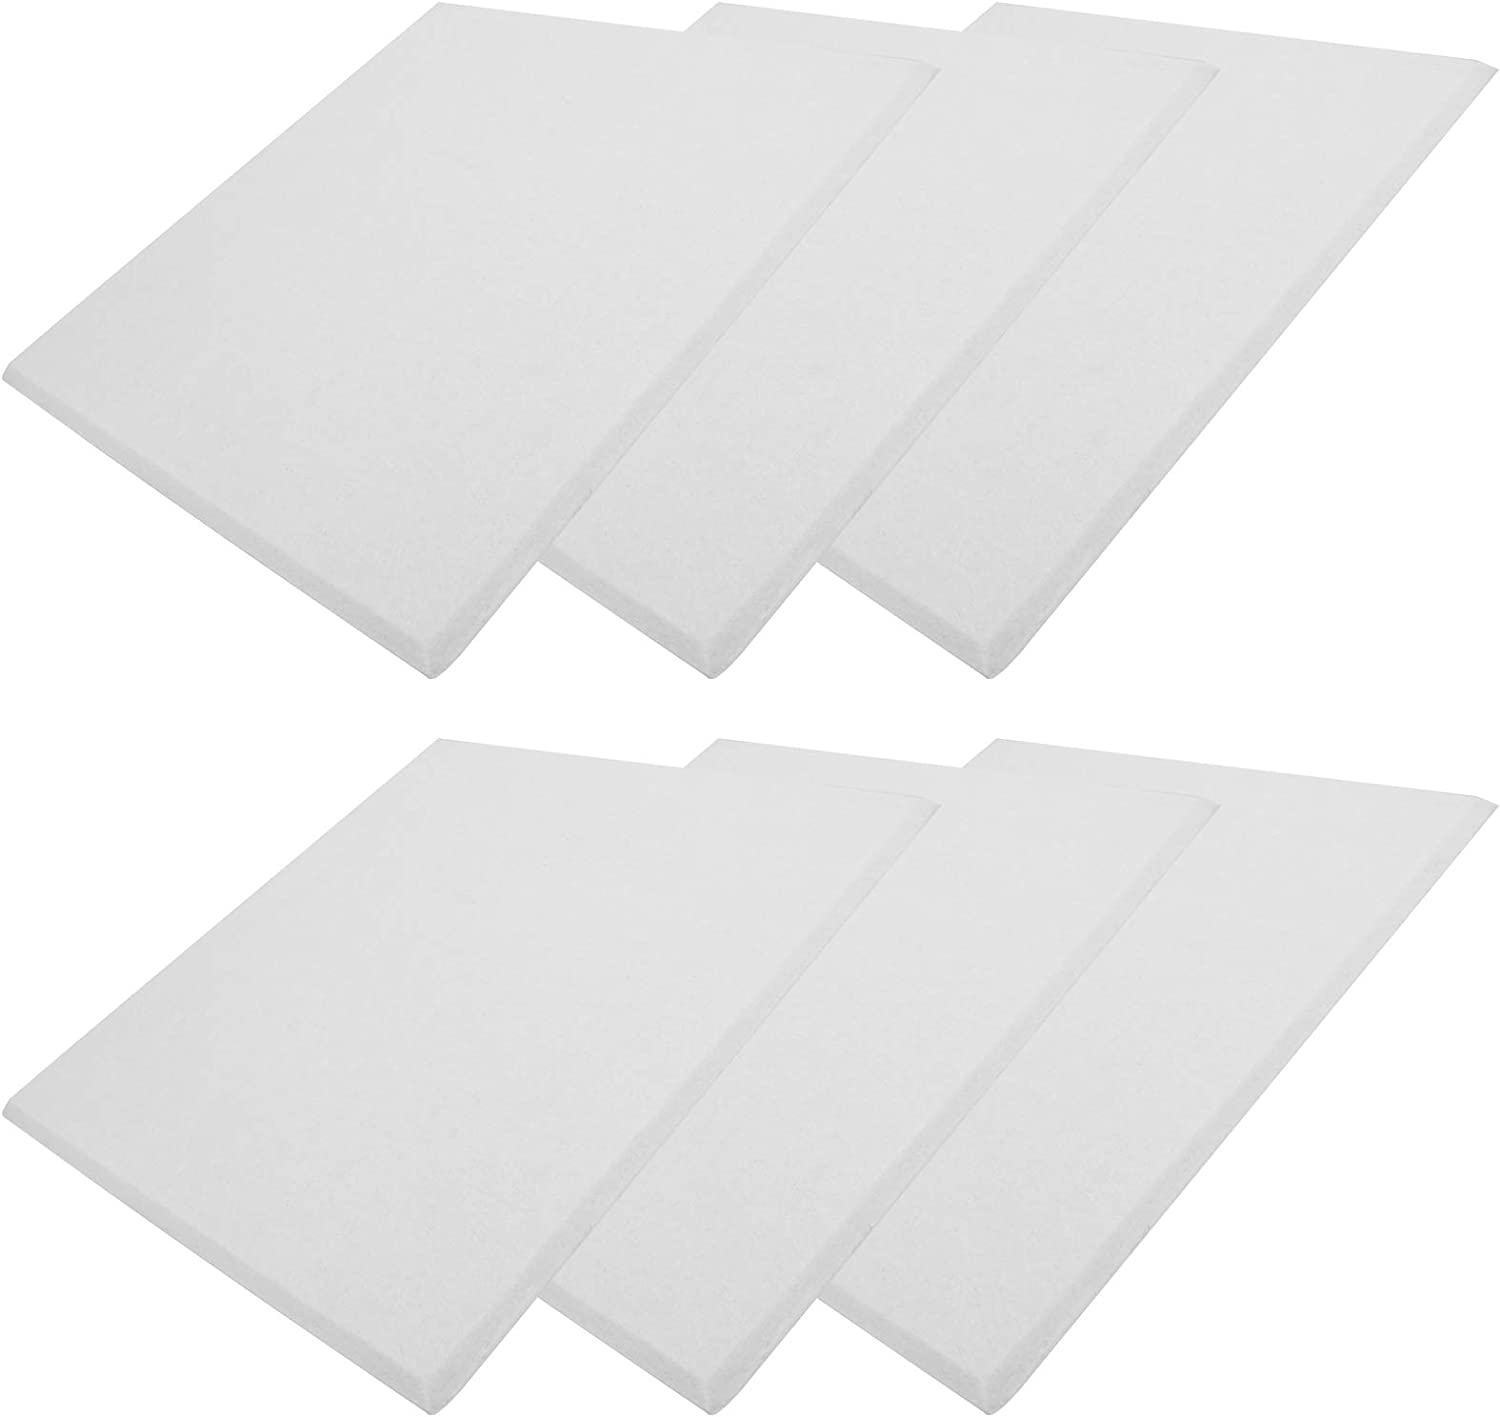 6PCs Sound‑Absorbing Very popular Board Acoustical Polyester Fib Treatments Los Angeles Mall